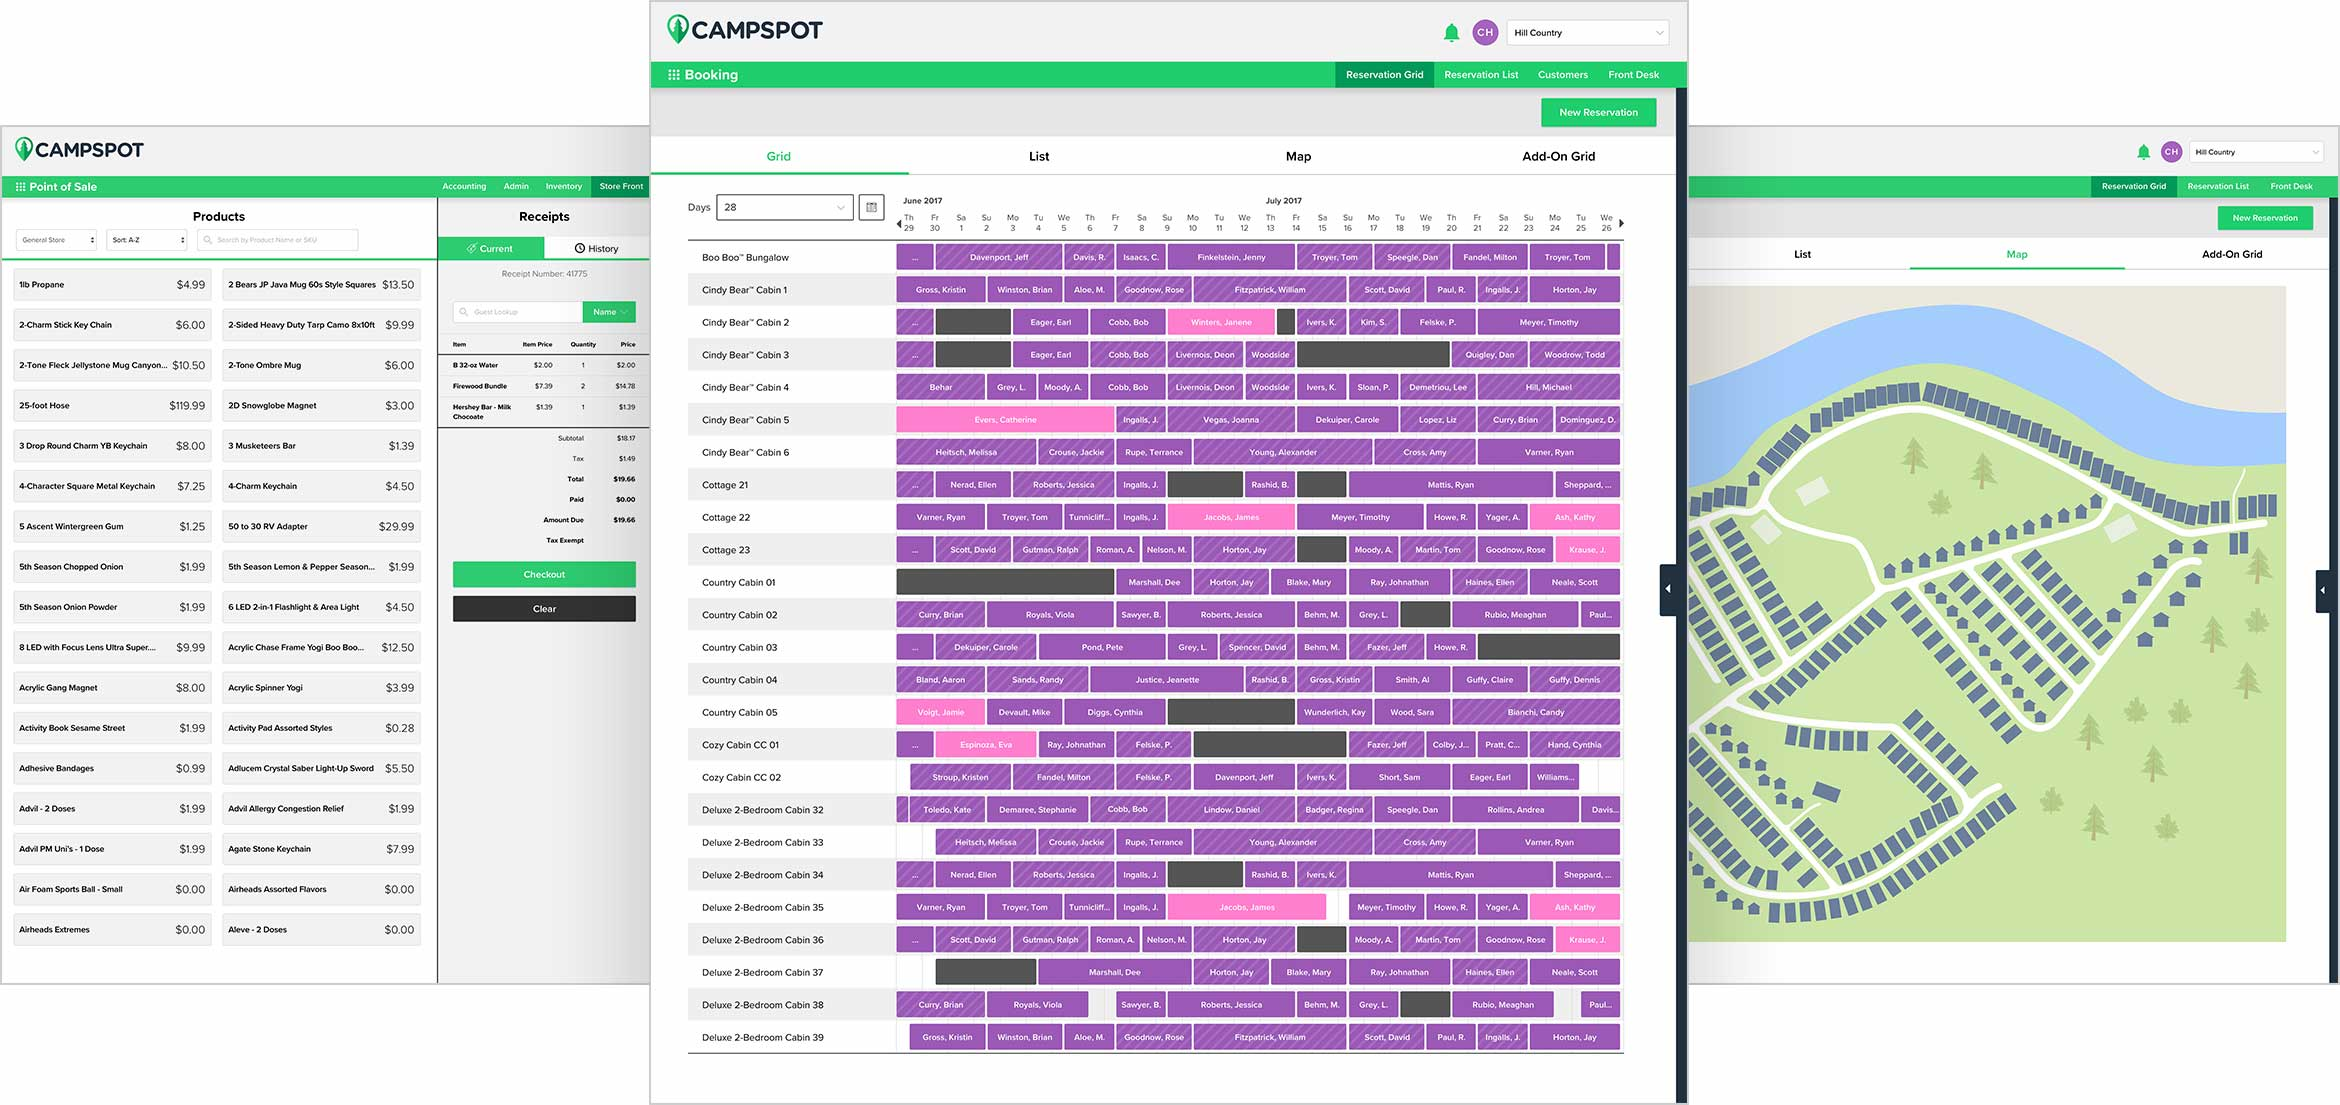 Campspot point of sale, reservation grid, and campground map interfaces